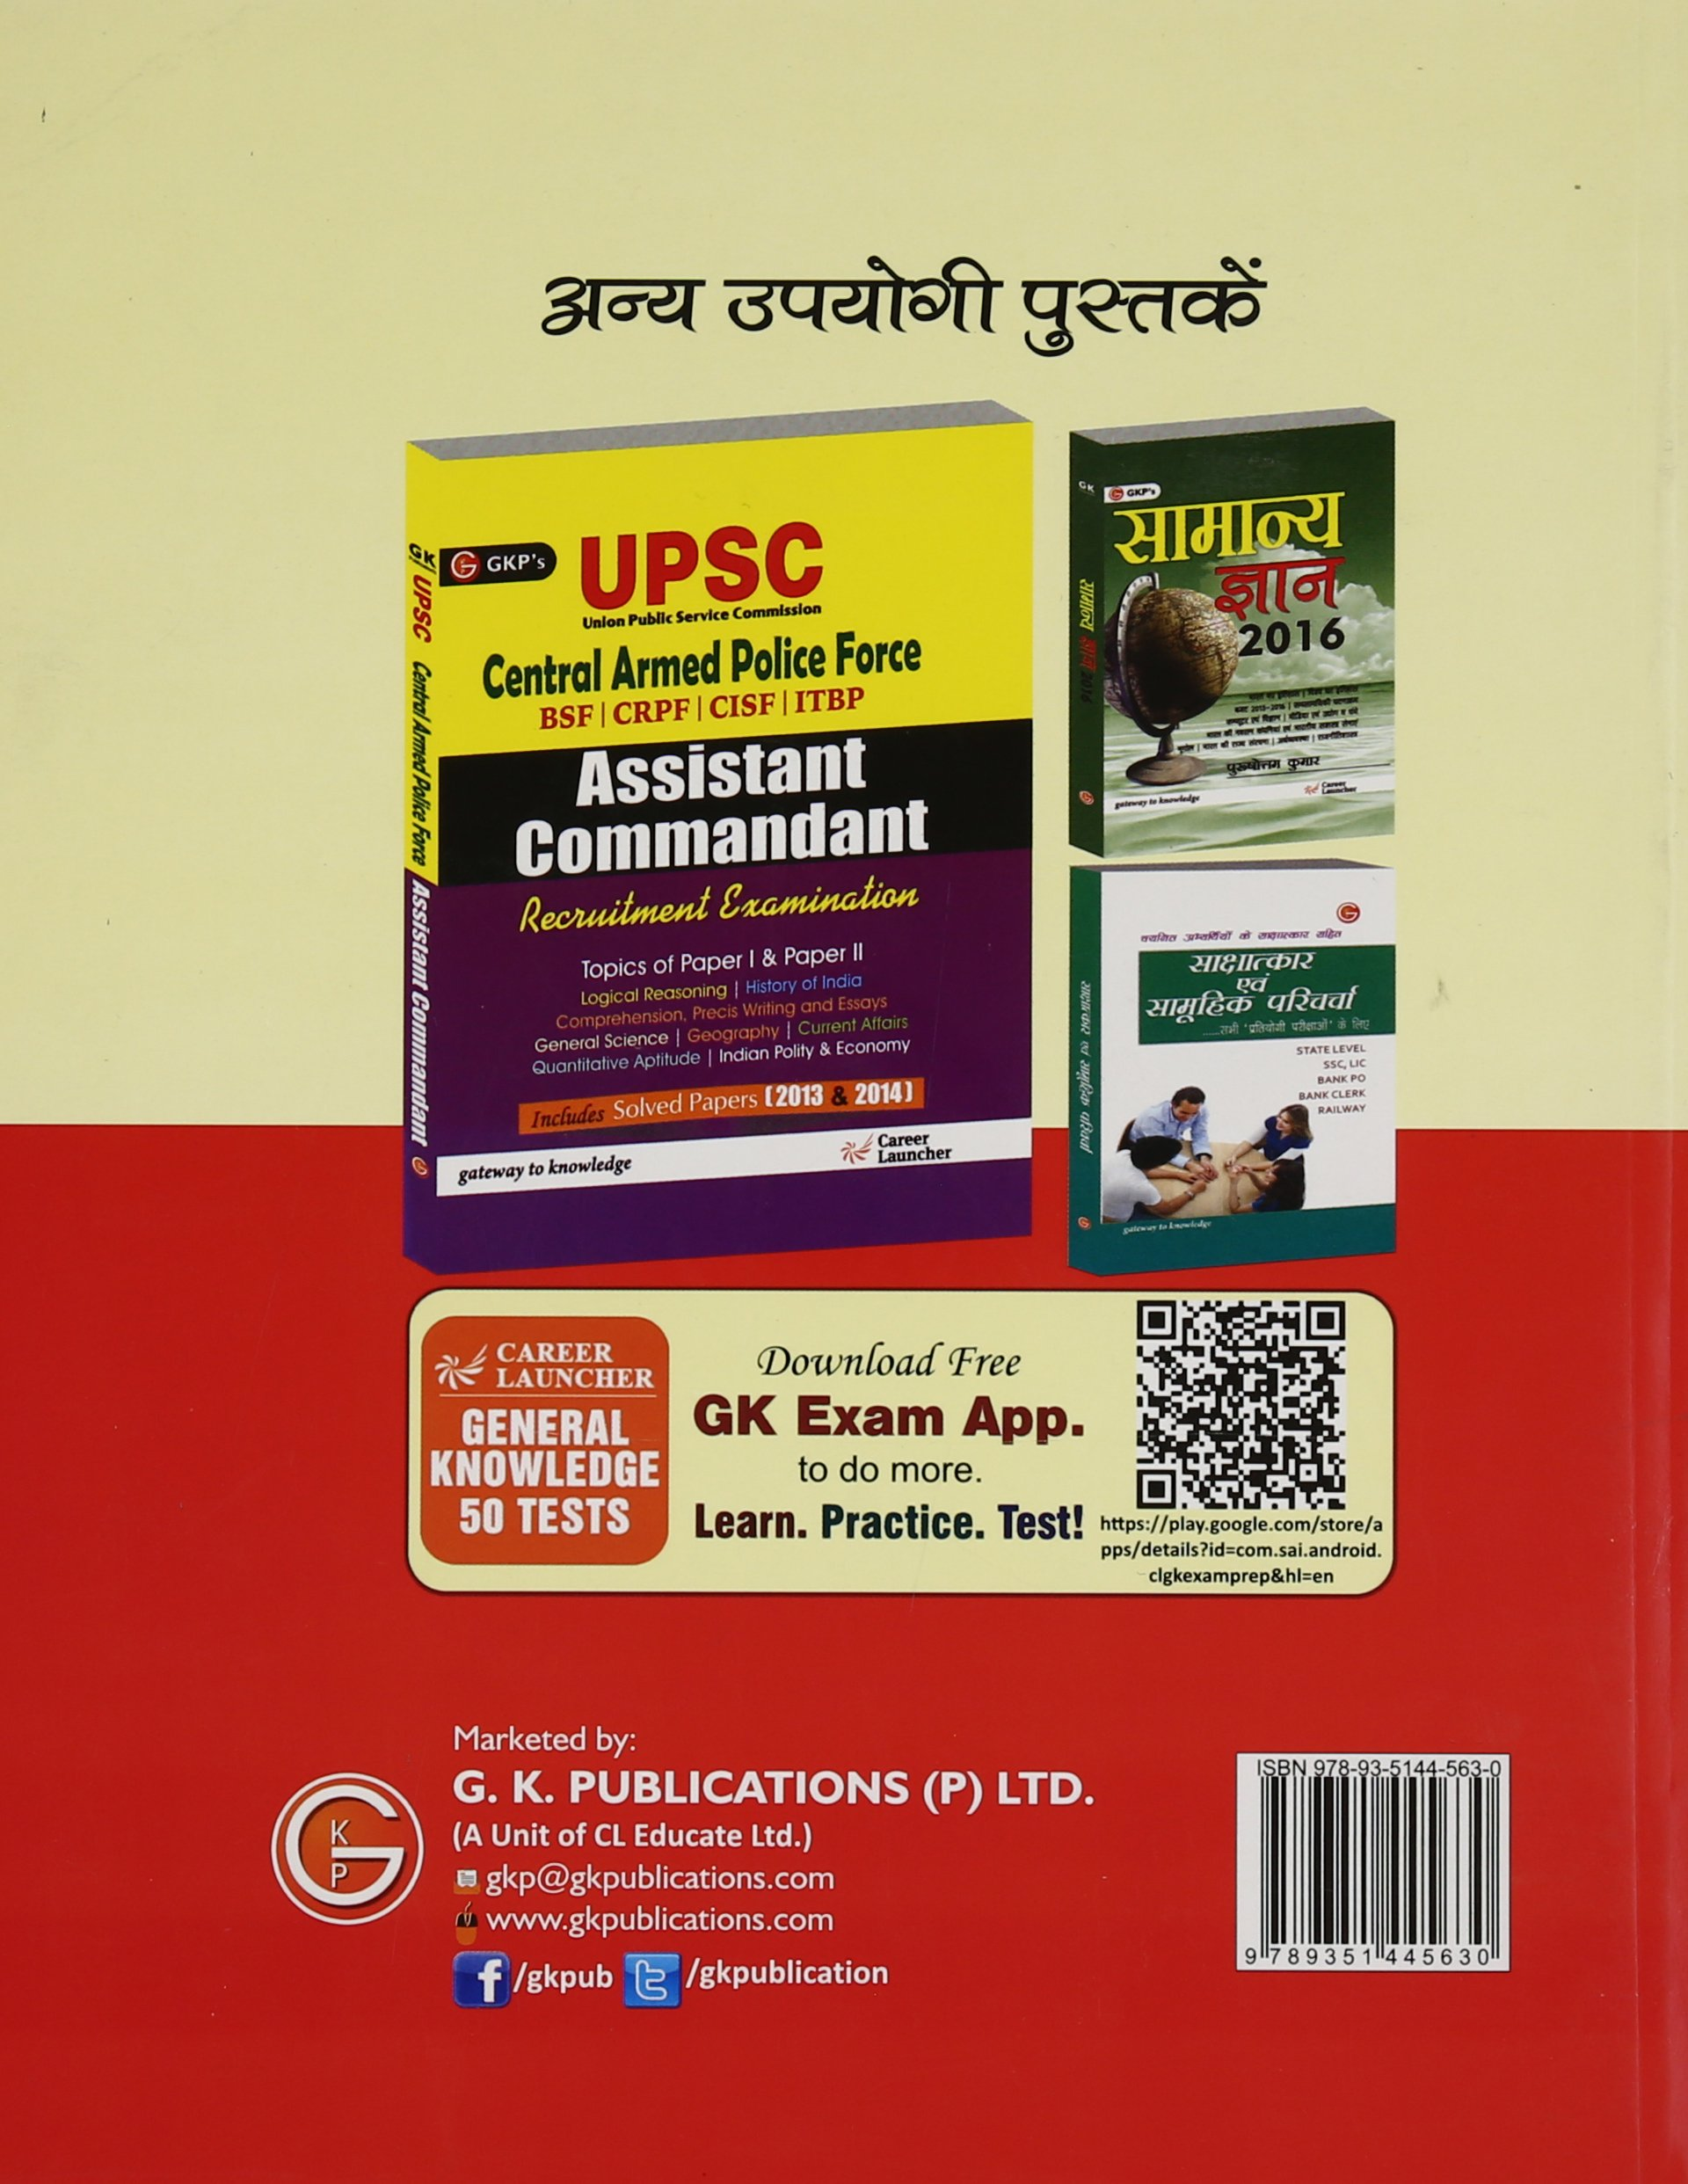 Buy UPSC Assistant Commandant (BSF/CRPF/CISF/ITBP) 2015: Guide Book Online  at Low Prices in India | UPSC Assistant Commandant (BSF/CRPF/CISF/ITBP)  2015: ...